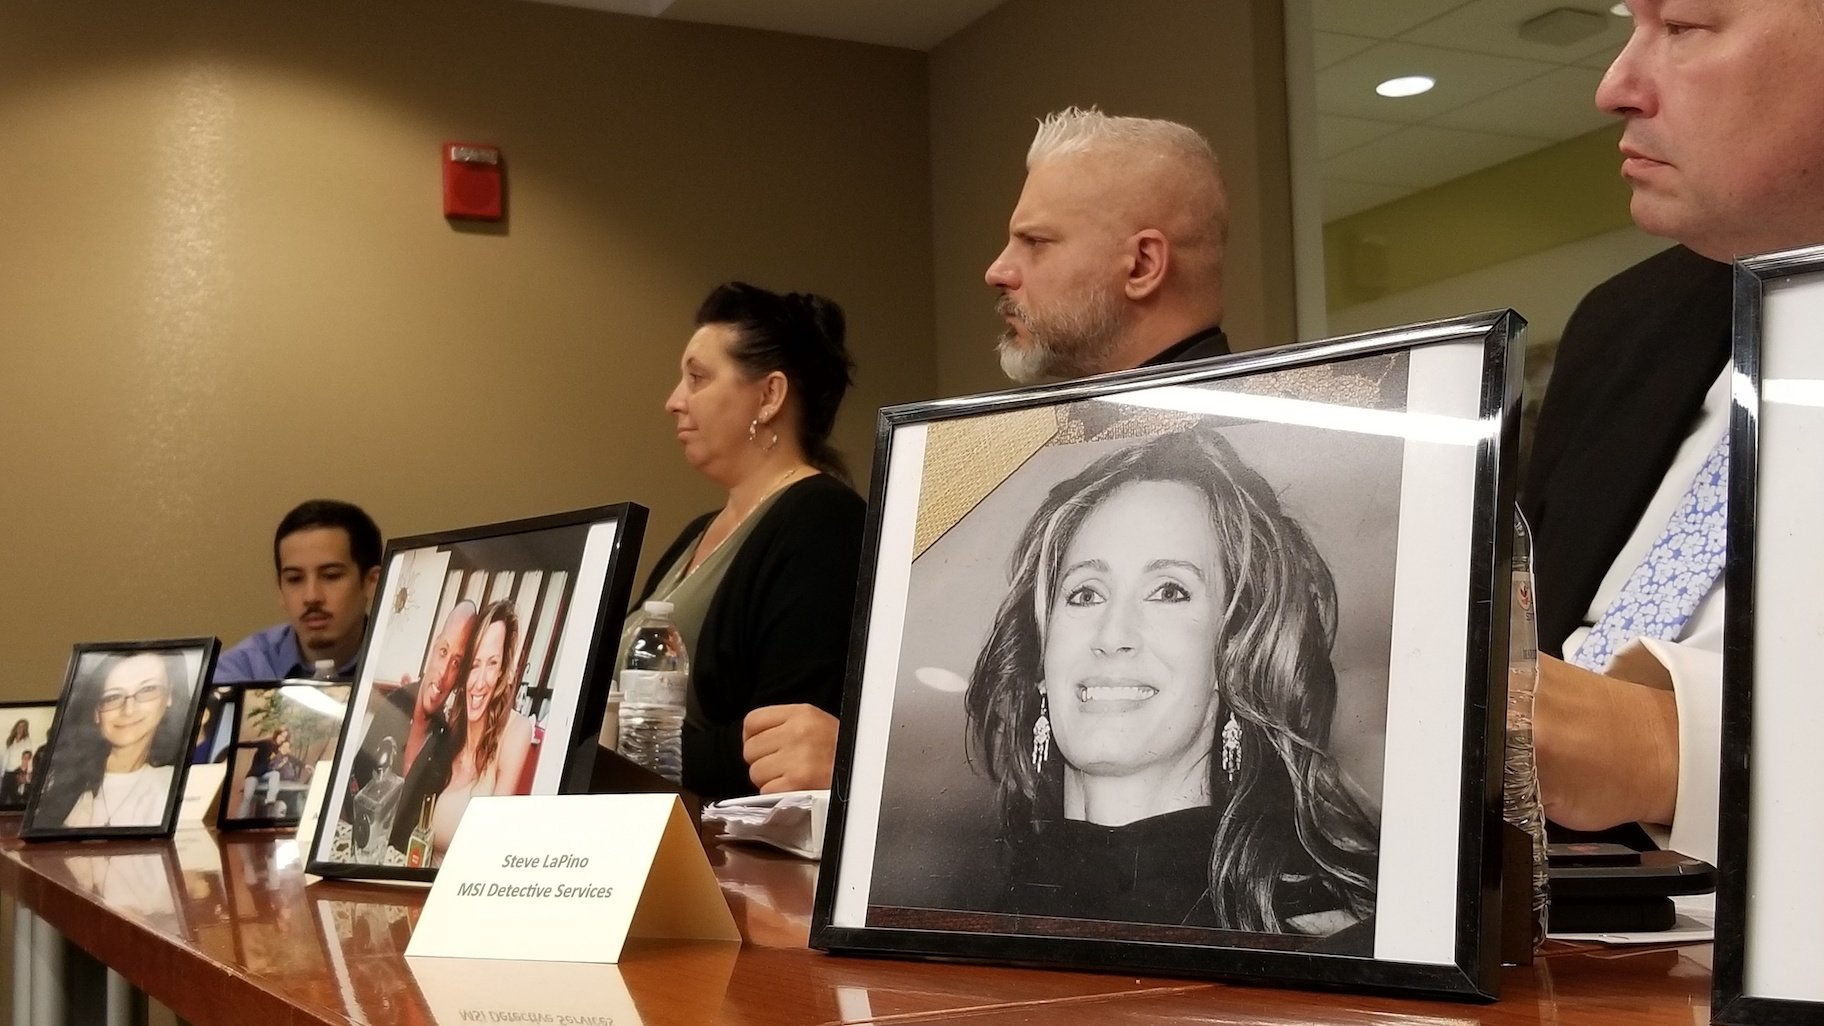 Members of Marni Yang's family and investigative team sit behind photos of Rhoni Reuter, who Yang was convicted of killing in 2007. (Matt Masterson / WTTW News)